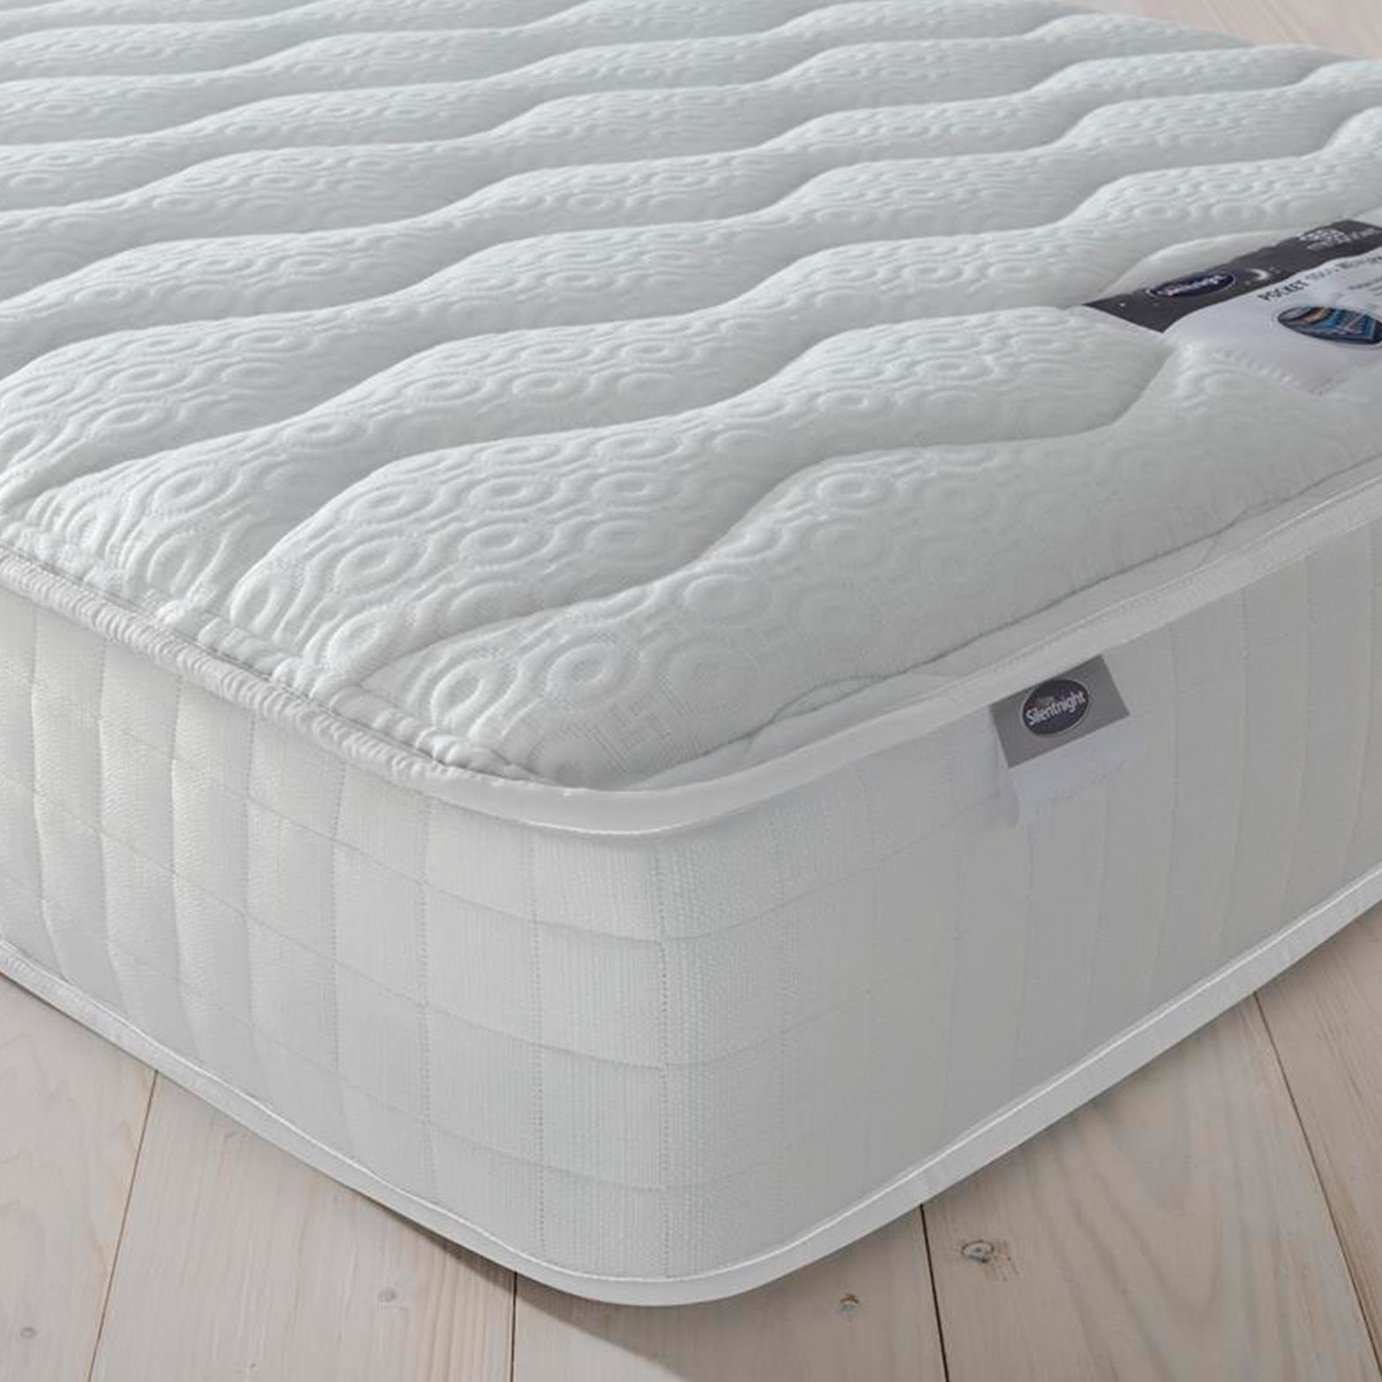 Silentnight 1000 Pocket Memory Double Mattress